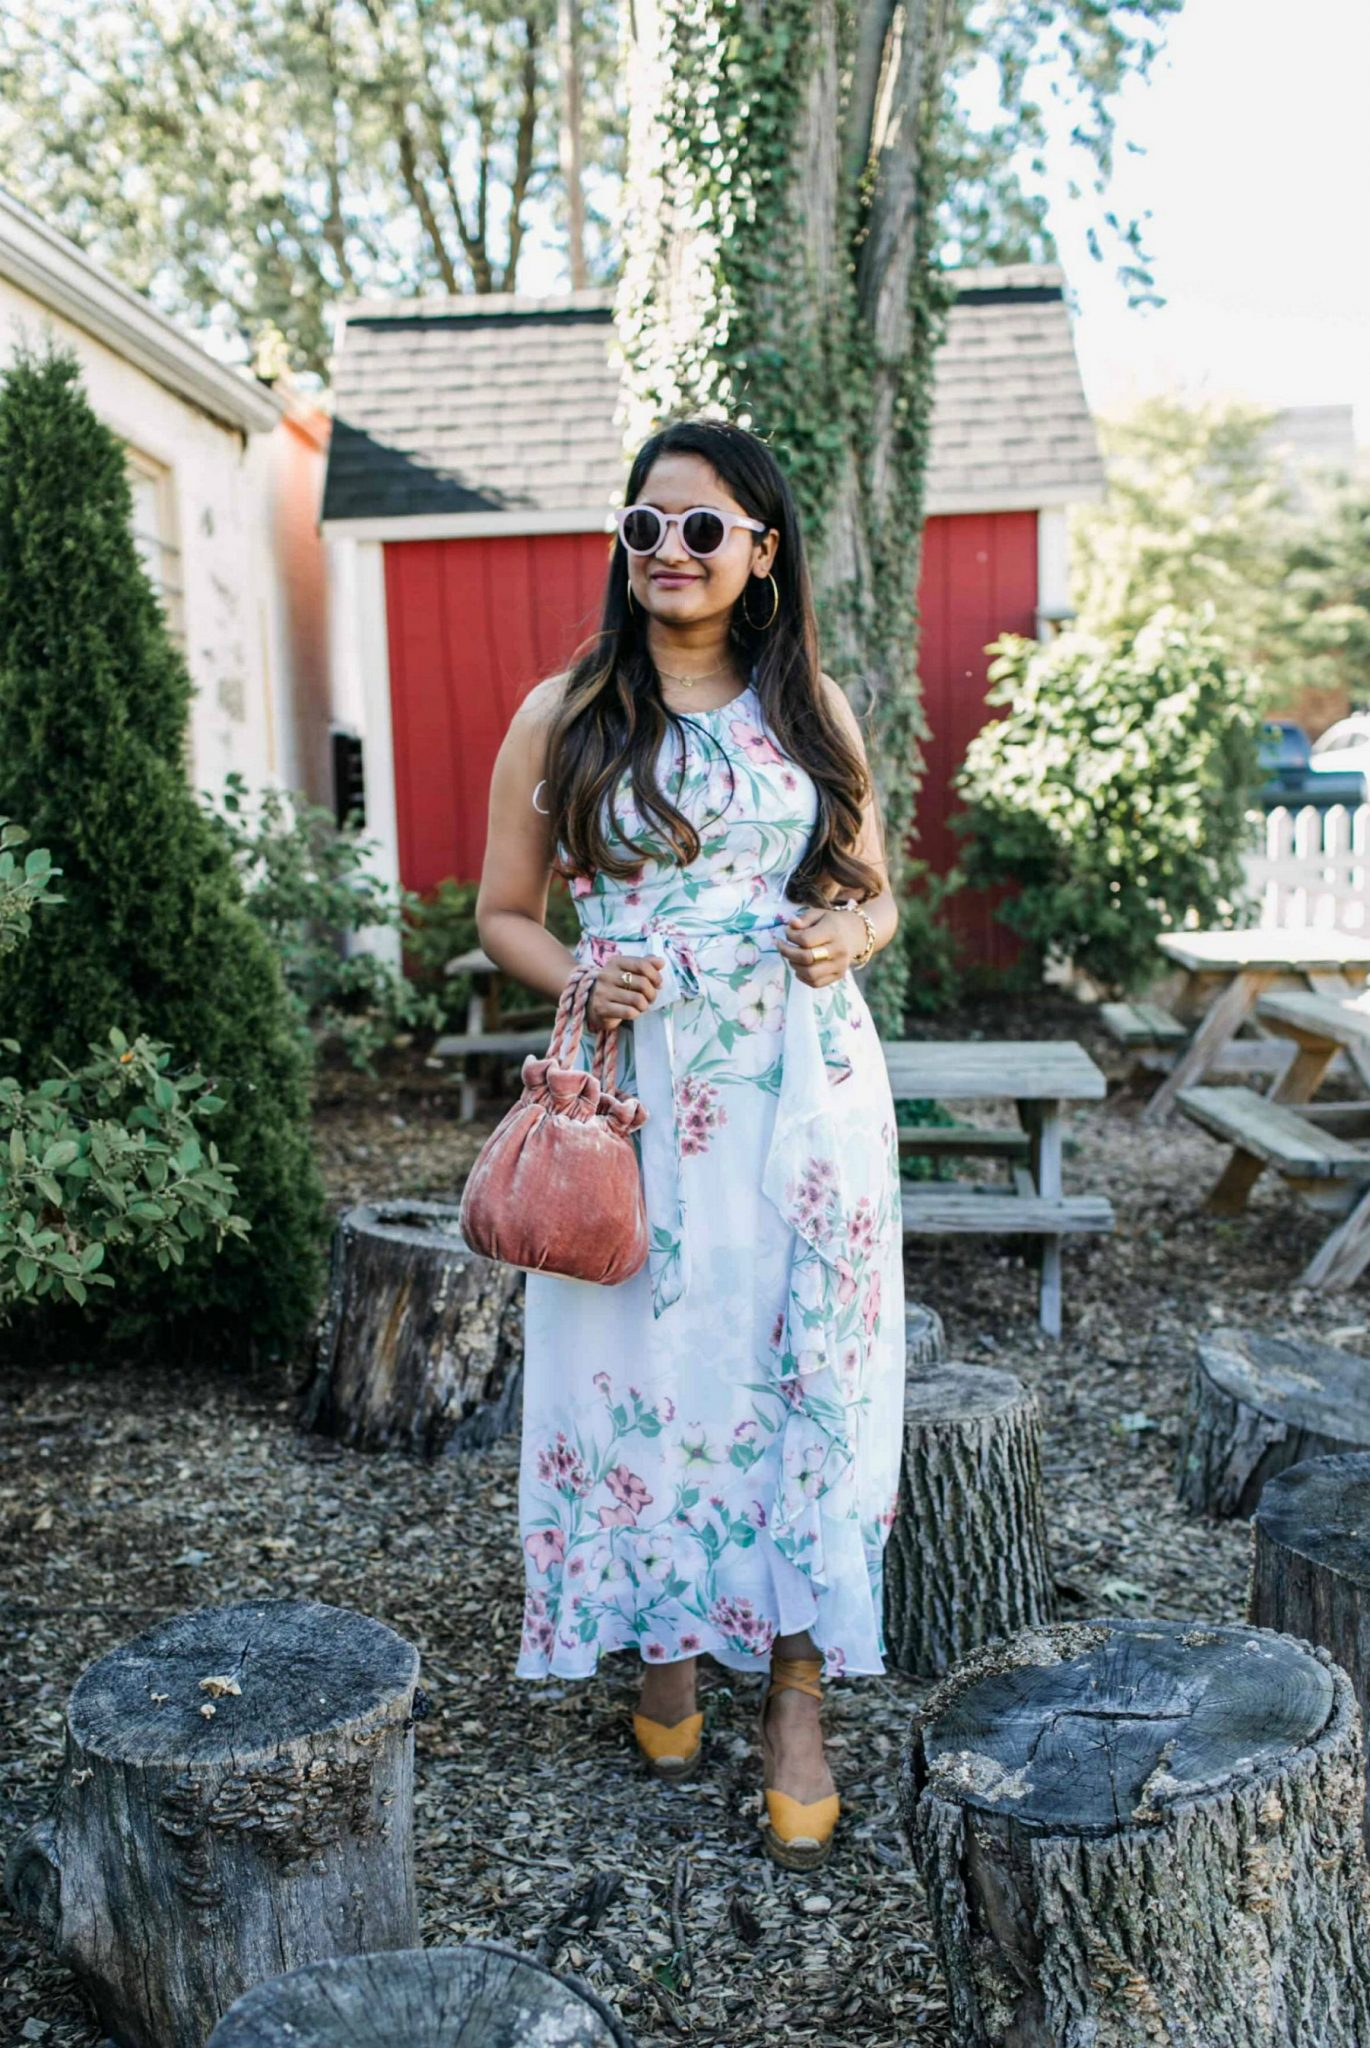 wearing R & K Originals Sleeveless Floral Maxi Dress - JCPenney 6 | | Cute Wedding Guest Dresses for Summer featured by popular Ohio modest fashion blogger, Dreaming Loud